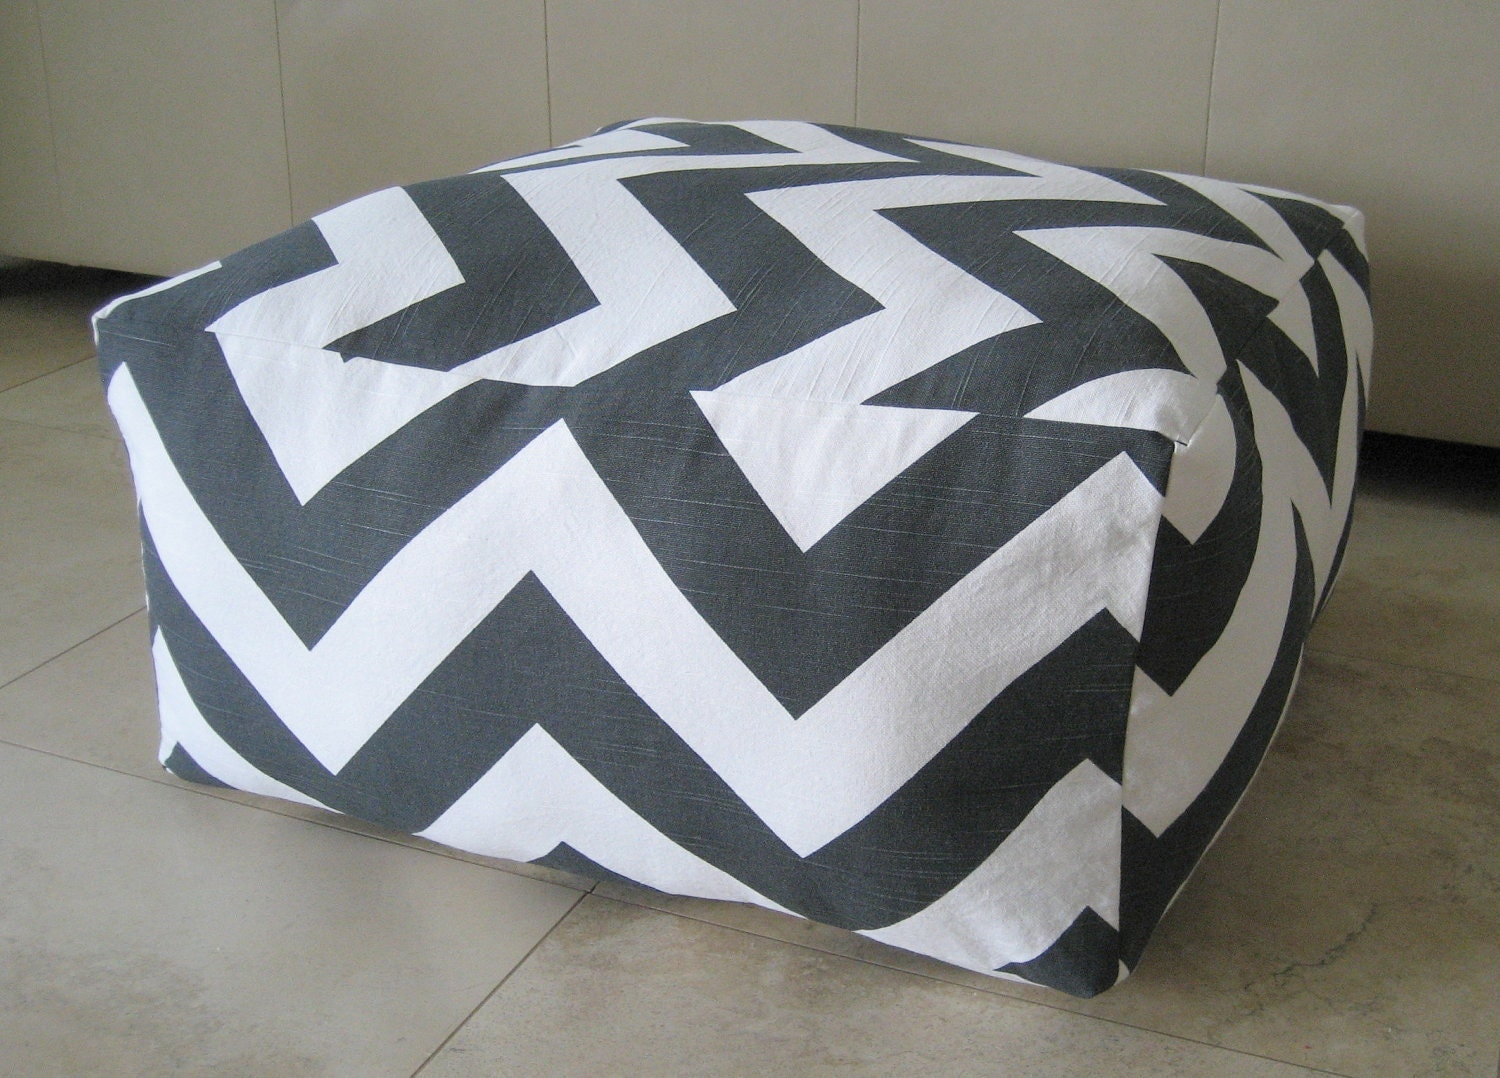 Floor Pillows For Playroom : More Colors Square Pouf Floor Pillow Charcoal White by aletafae